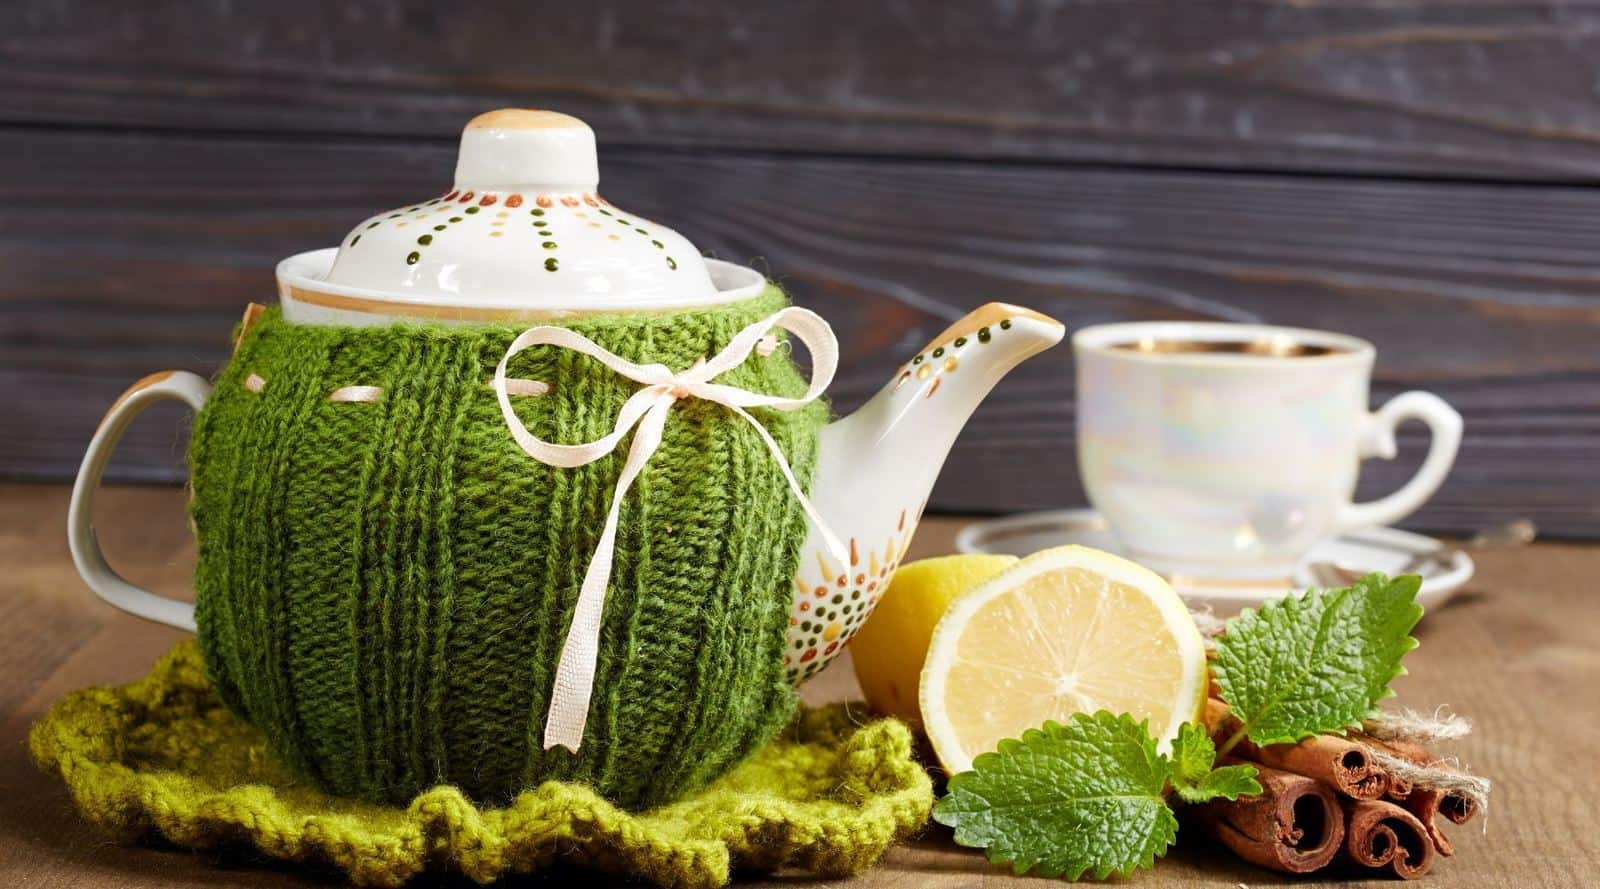 what is a tea cozy? how to use it?